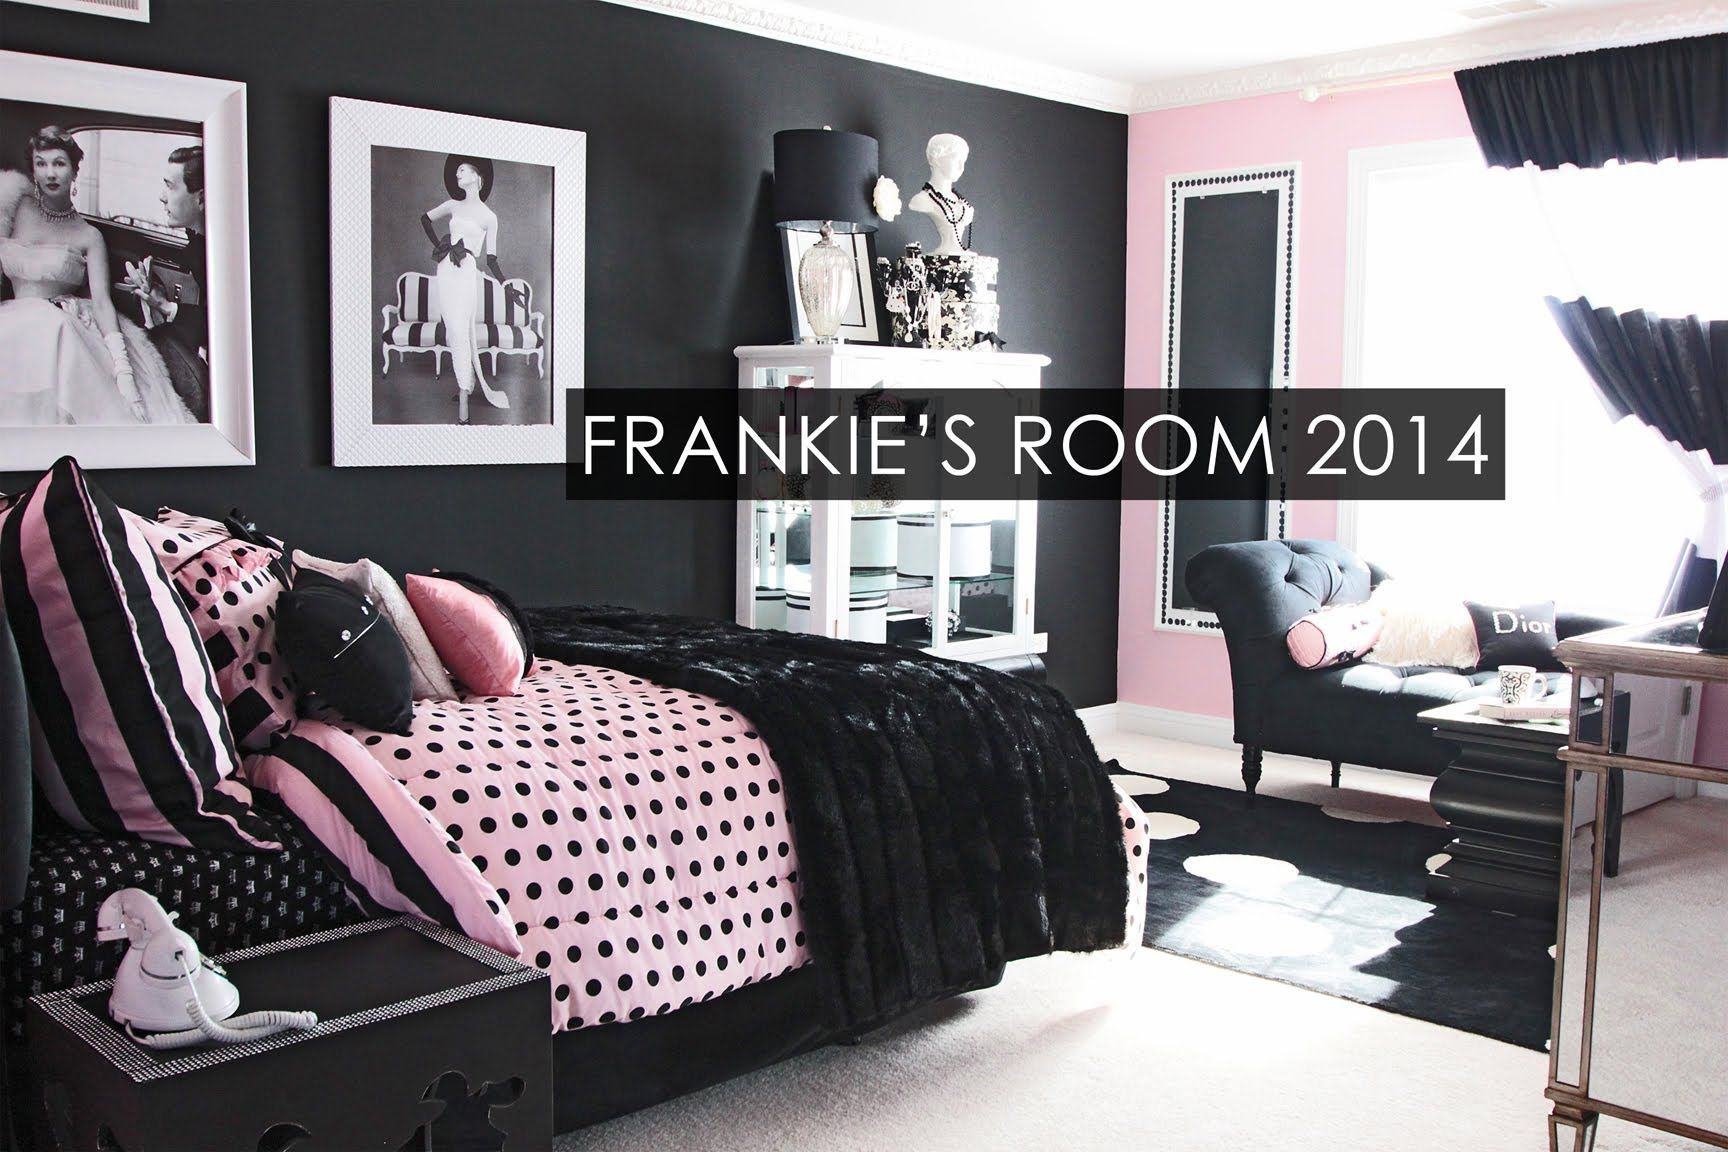 Wake Up Frankie Frankie S Room Tour 2014 Frenchie Left Bank Pink Black Room Tiffany Blue Bedroom Blue Bedroom